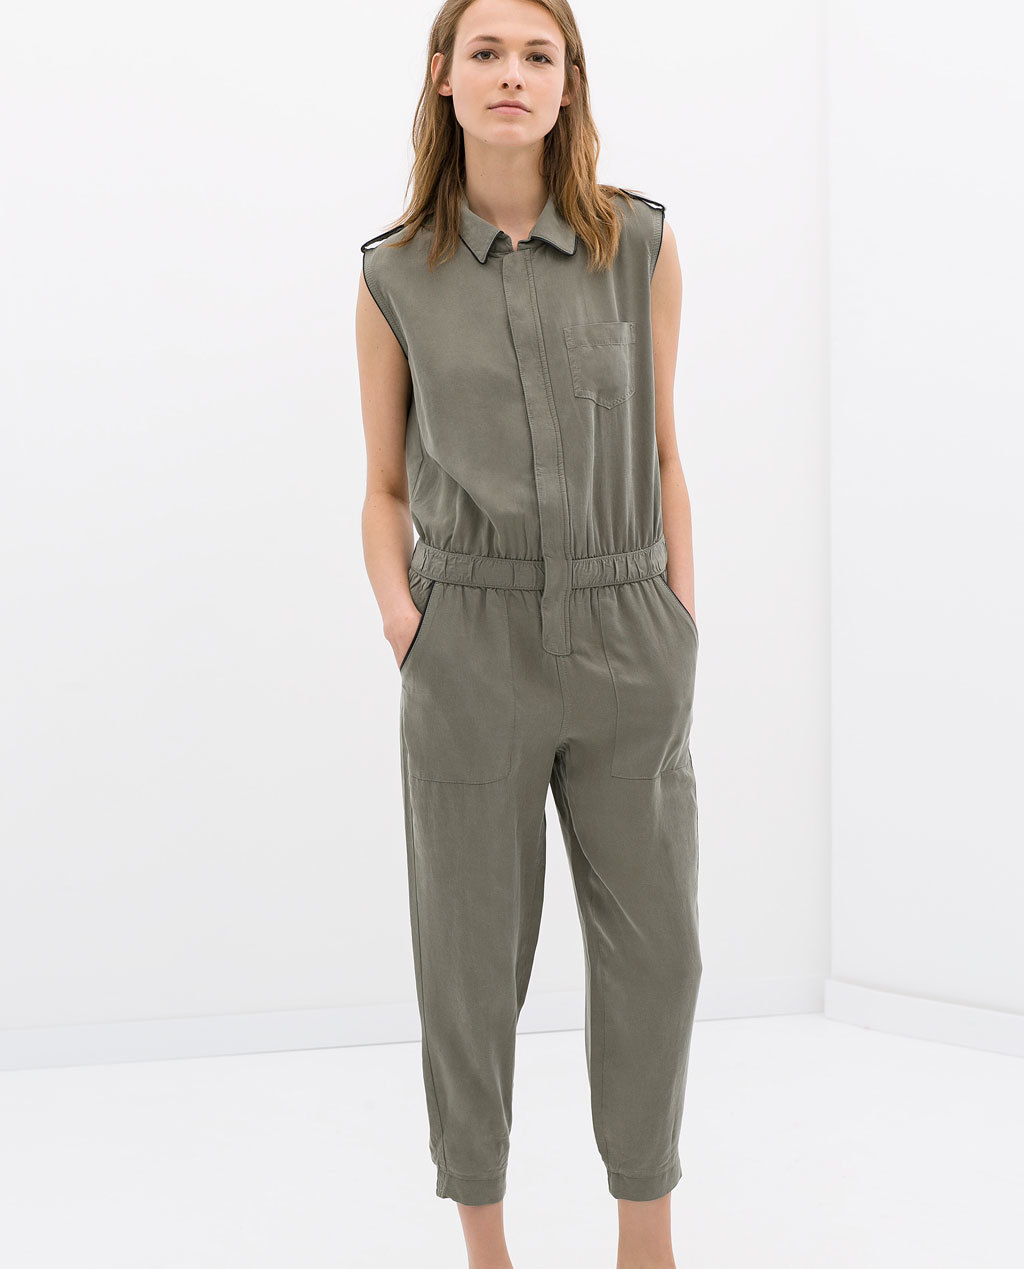 Jumpsuit - neckline: shirt collar/peter pan/zip with opening; fit: fitted at waist; pattern: plain; sleeve style: sleeveless; waist detail: elasticated waist; predominant colour: khaki; occasions: casual, holiday; length: calf length; shoulder detail: discreet epaulette; sleeve length: sleeveless; style: jumpsuit; pattern type: fabric; texture group: other - light to midweight; season: s/s 2014